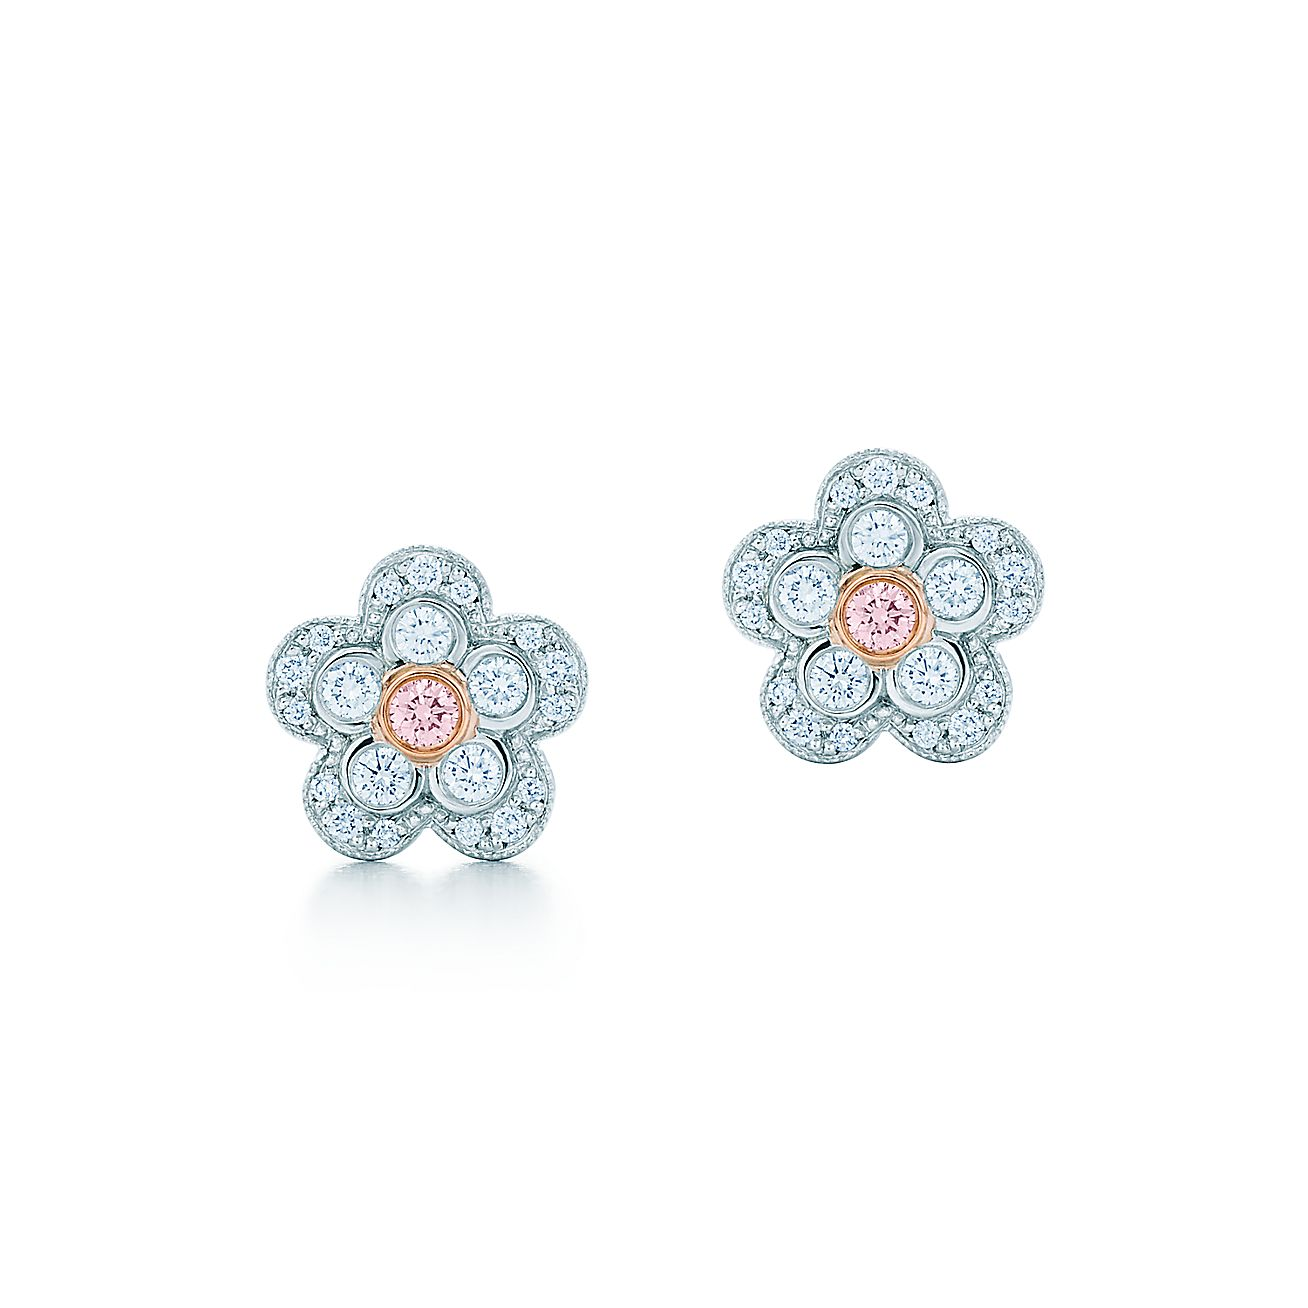 Diamonds Tiffany Co Flower Earrings In Platinum And Rose Gold With  White Fancy